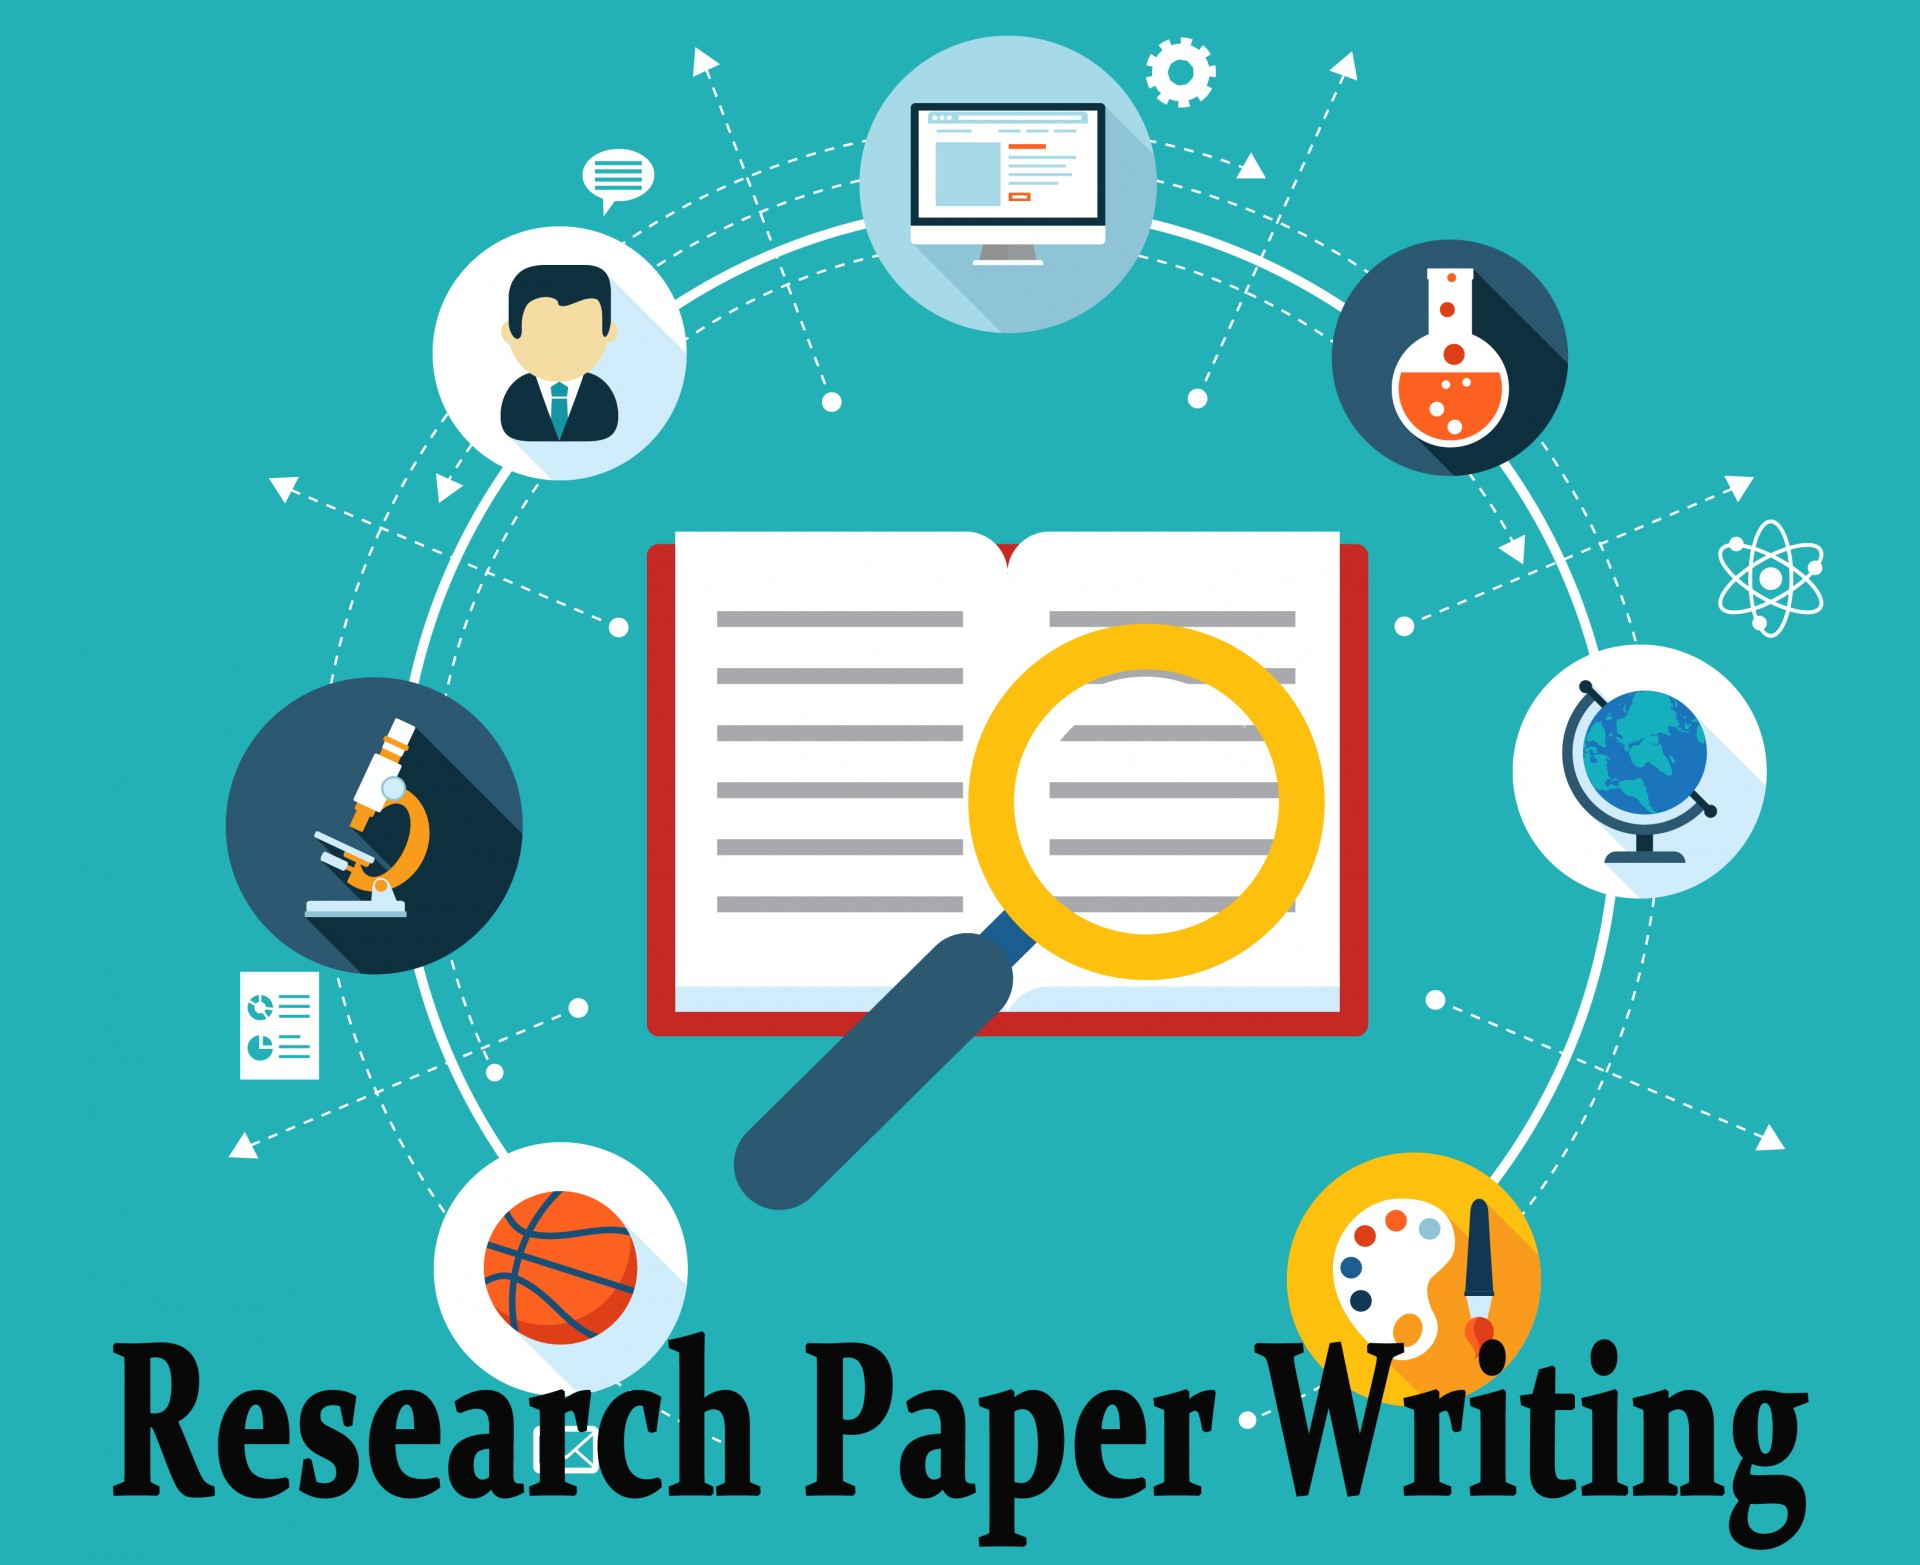 016 Research Paper 503 Effective Writing College Papers Stirring Written 1920